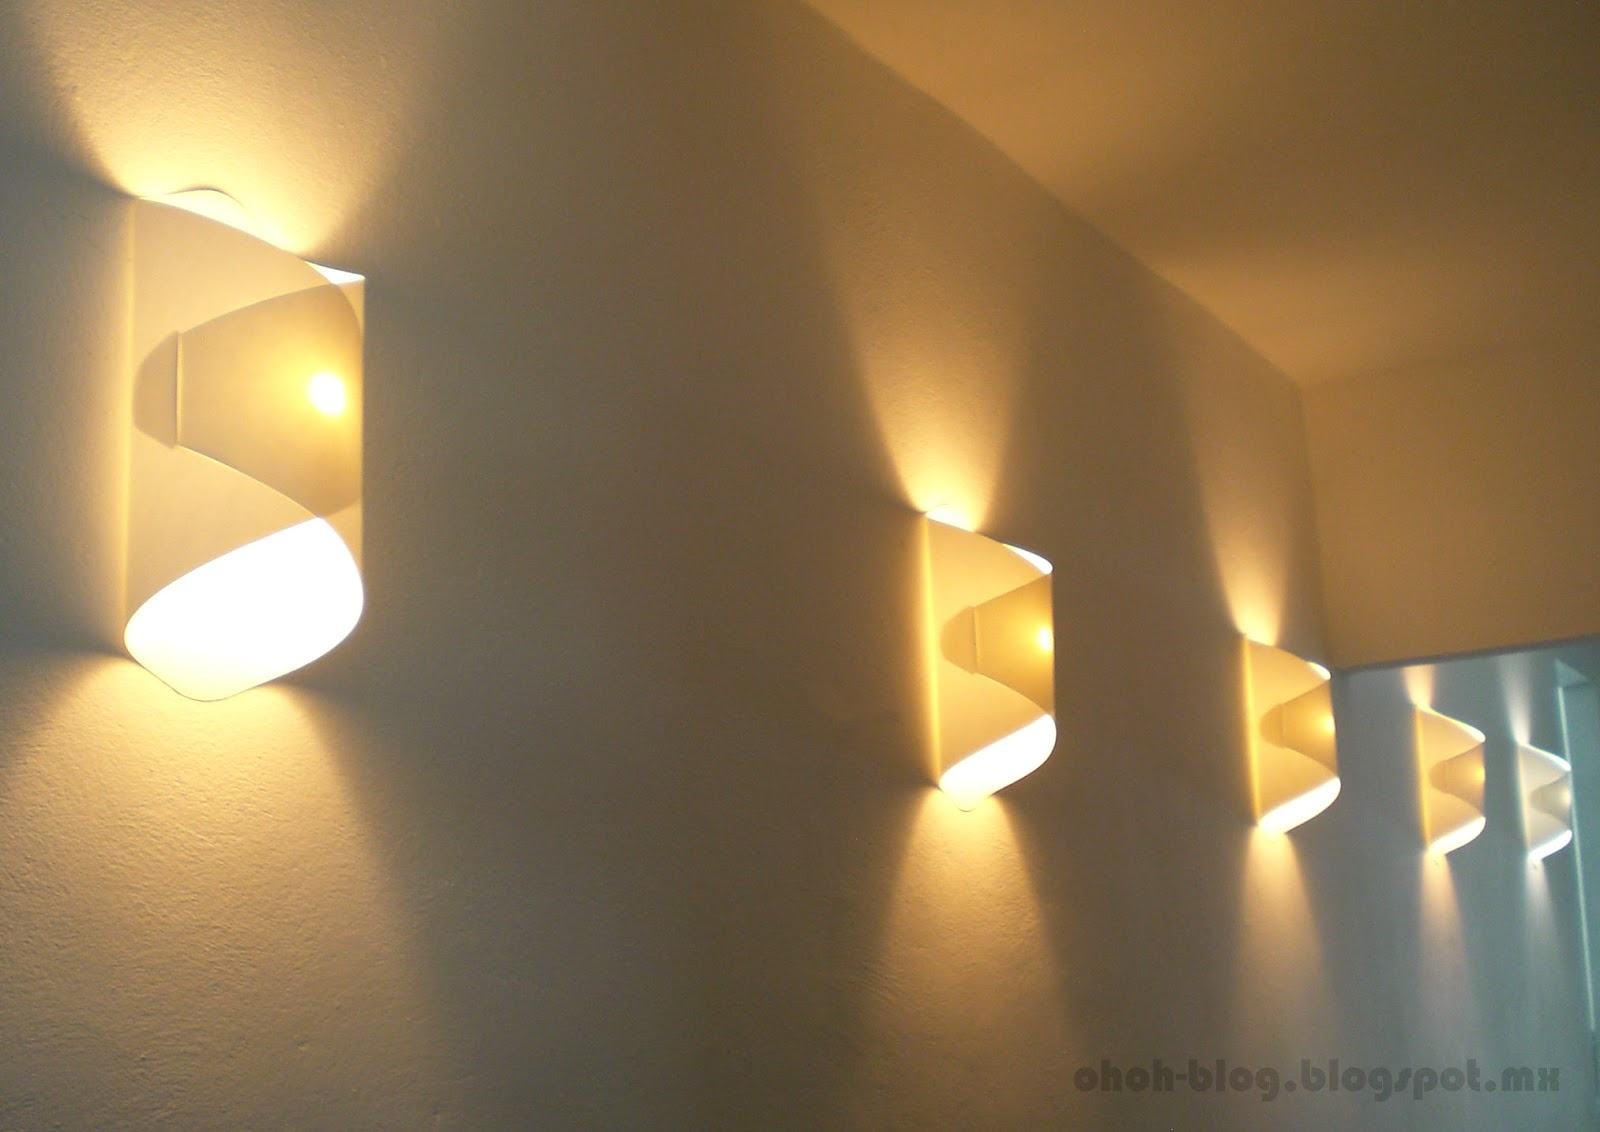 Diy paper lamp lampara de papel ohoh blog - Lampara de pared ...